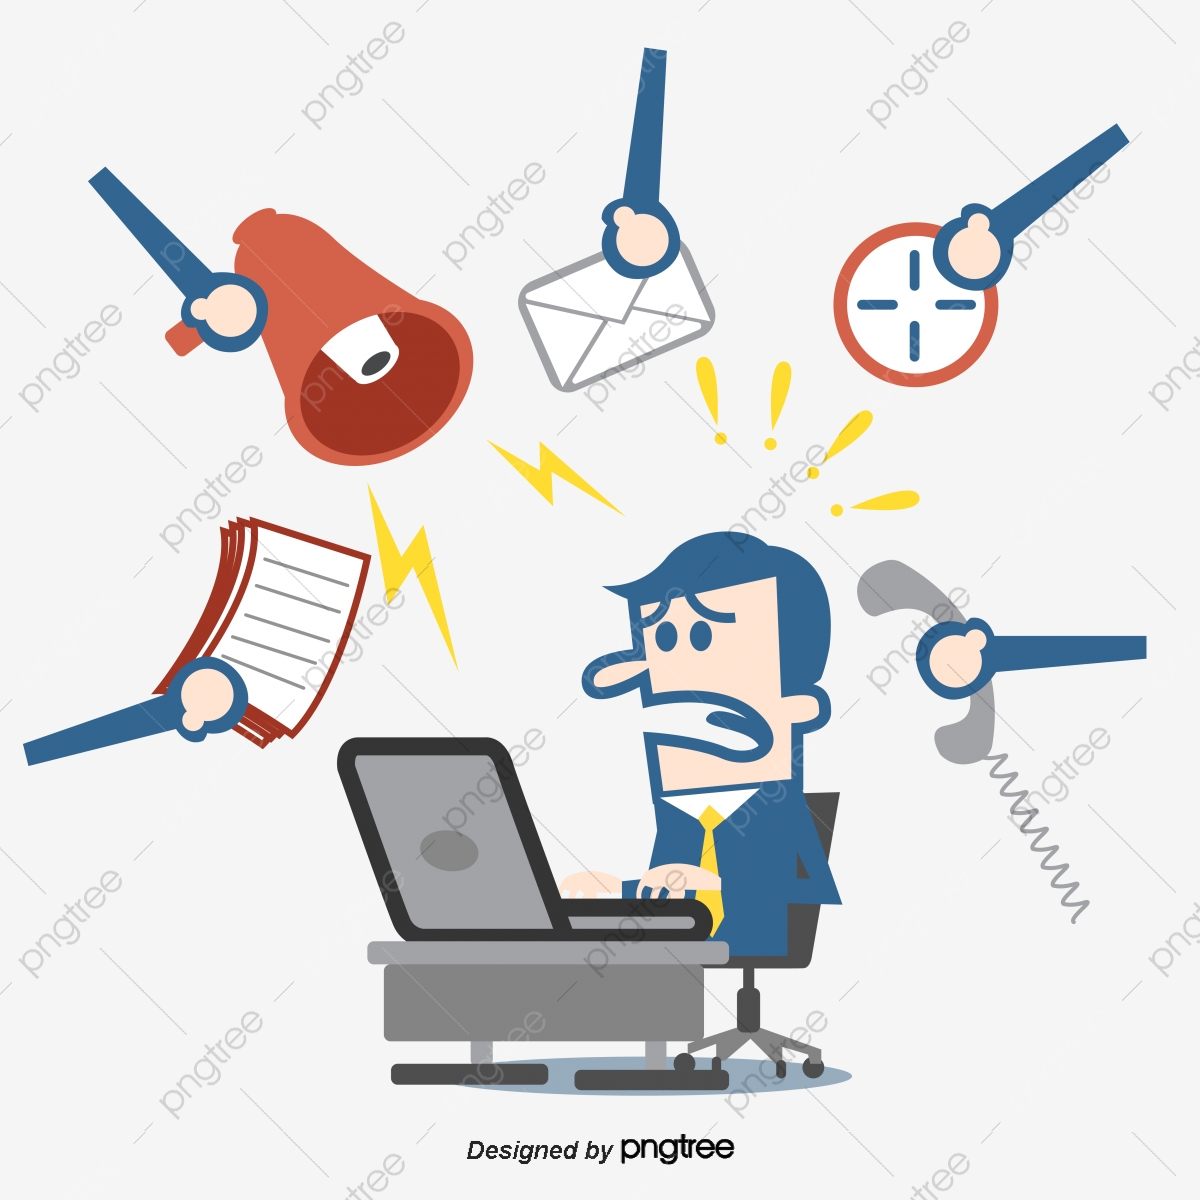 Free PNG Confused Person Clip Art Download - PinClipart